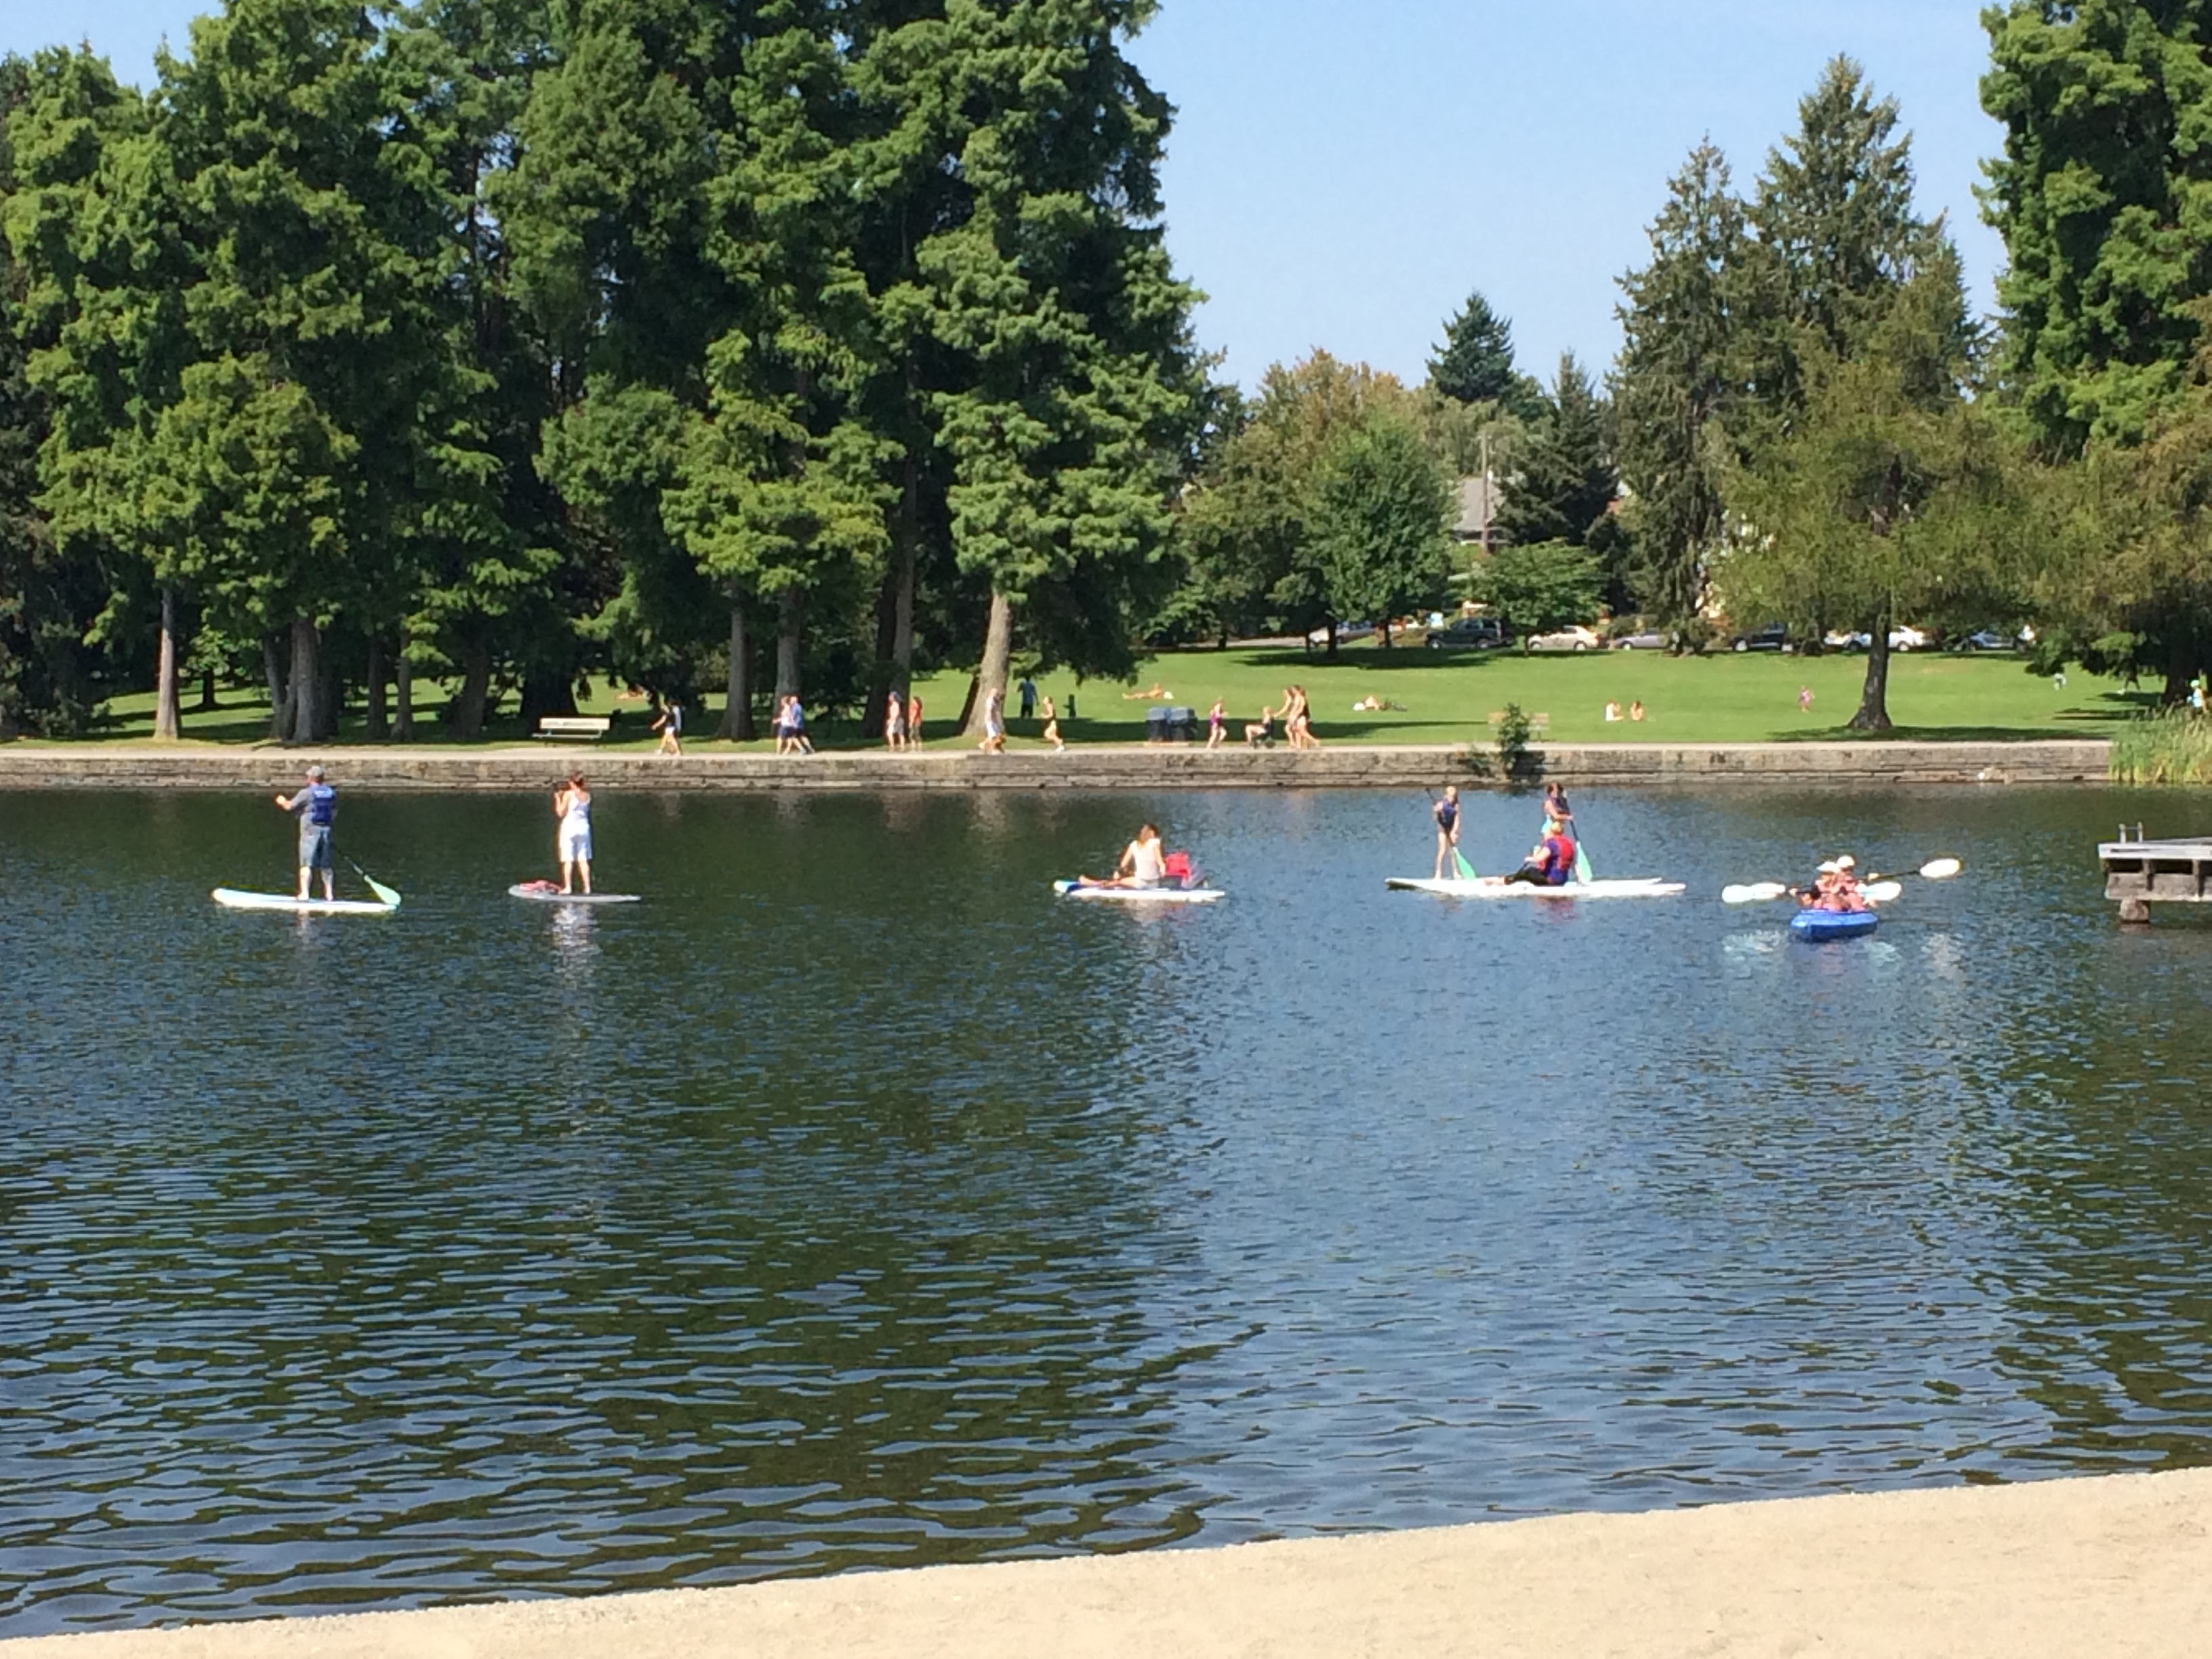 Greenlake – Paddle boarding